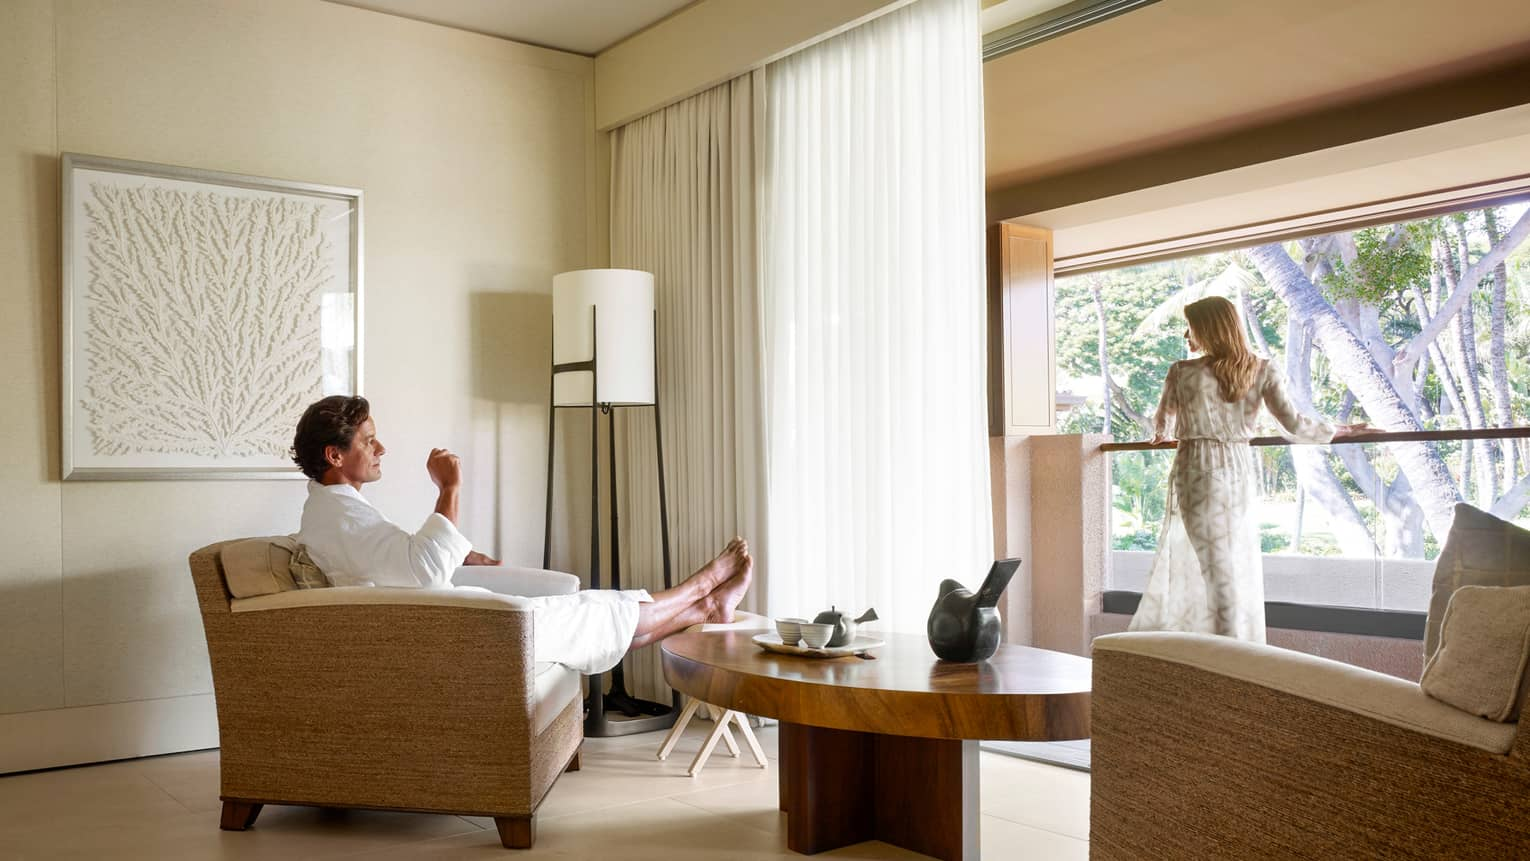 Man in white bathrobe kicks back in armchair in Spa room, woman in sheer robe stands at sunny window